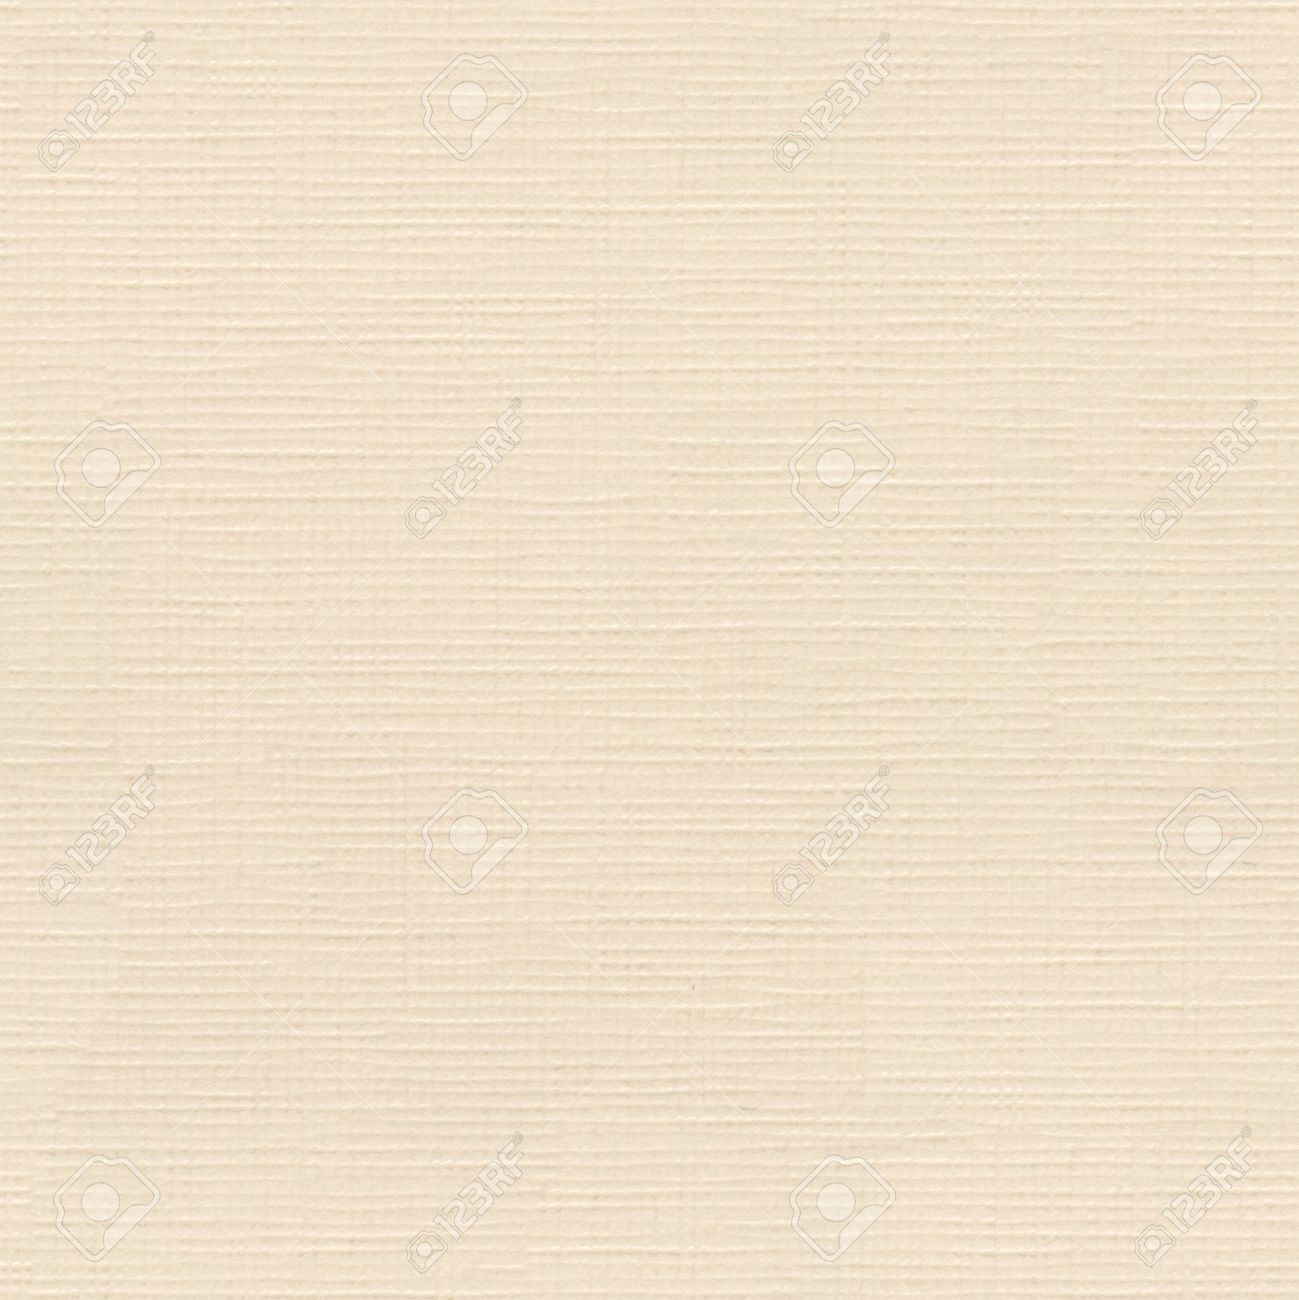 Superior Blended Paper Texture Pattern In Light Yellow Cream Beige Color Tone.  Seamless Square Background, Nice Ideas